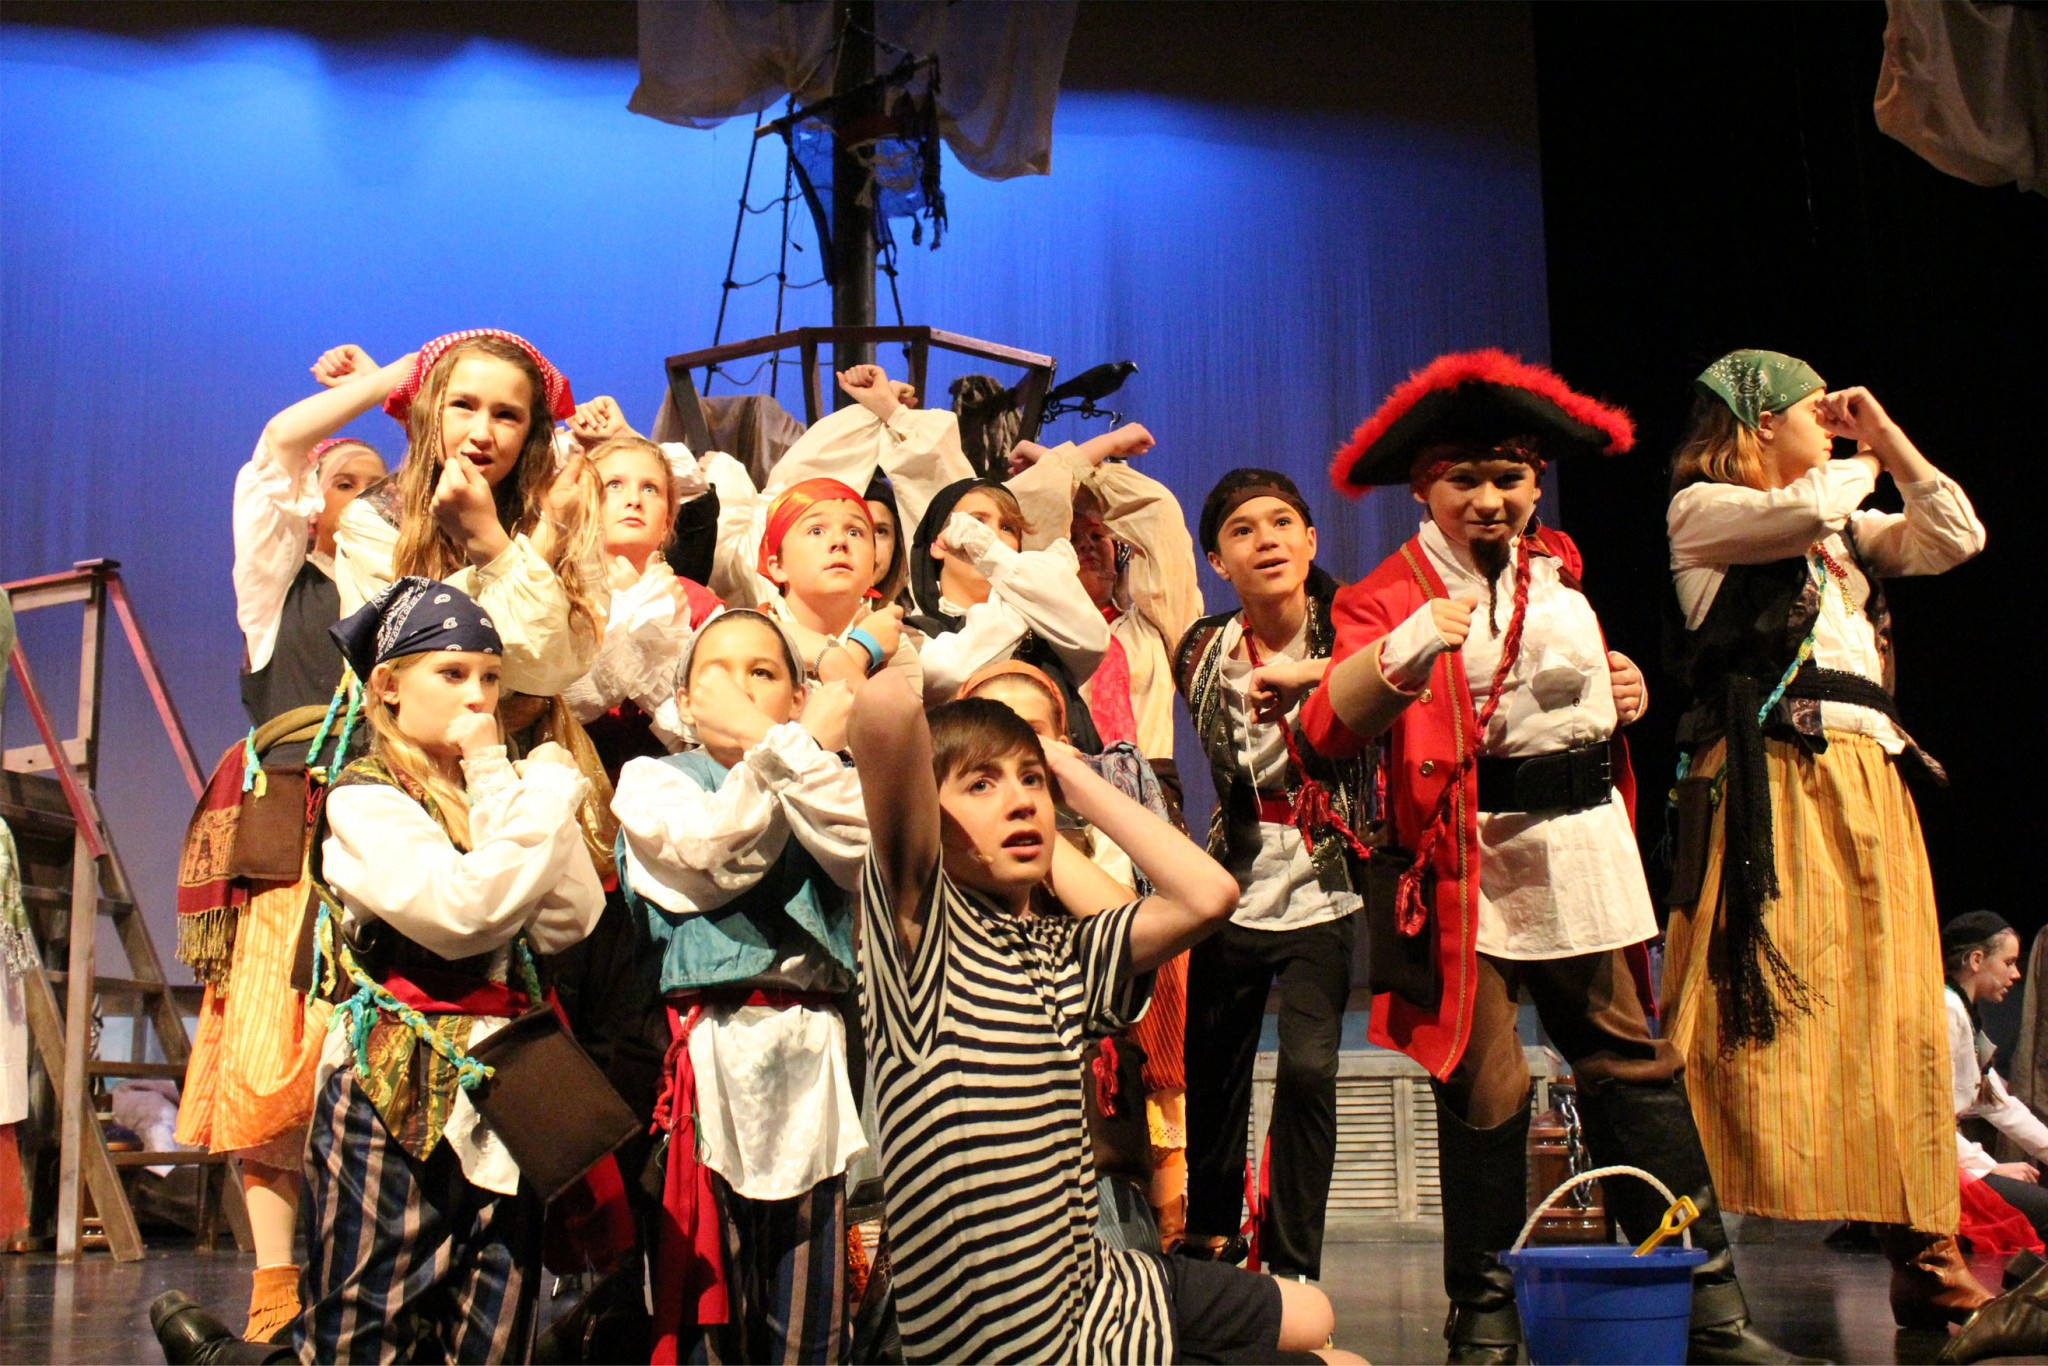 Become a Pirate cast